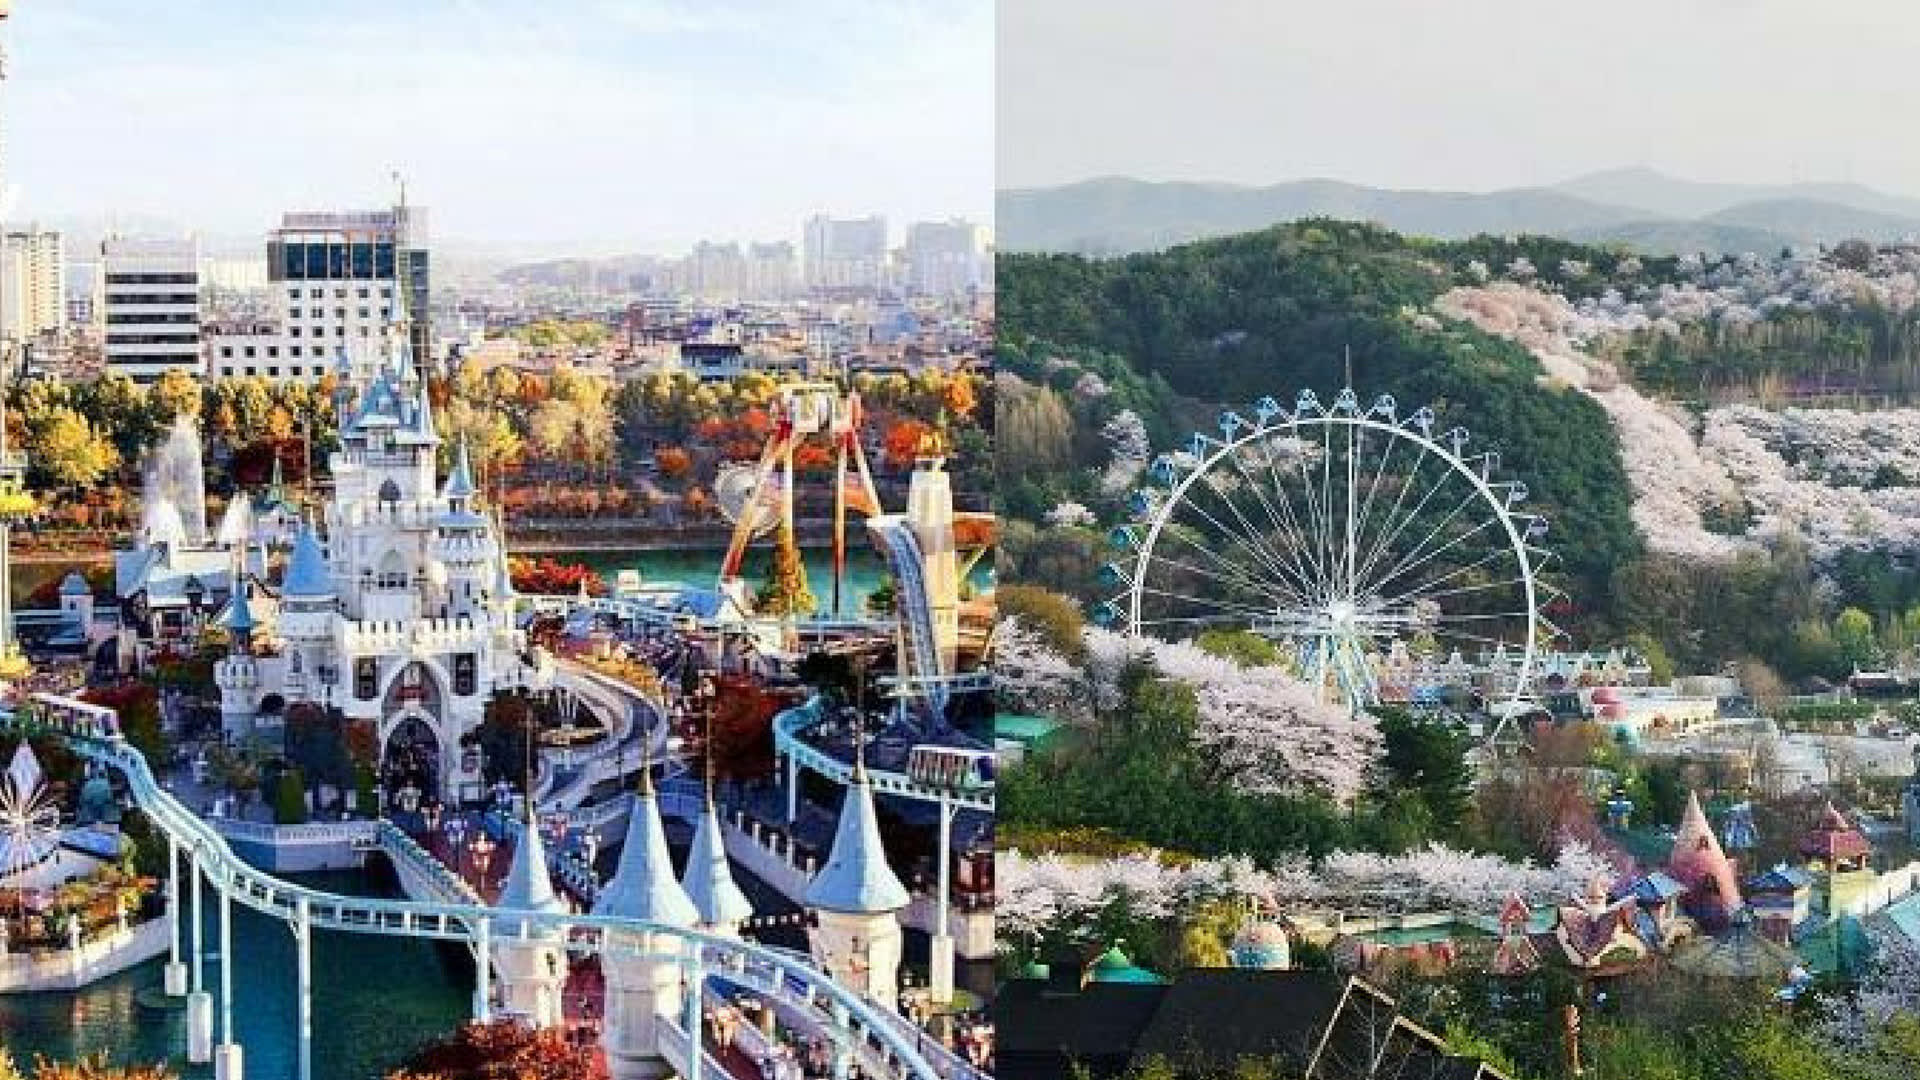 Lotte World & Everland - which Seoul theme park should you